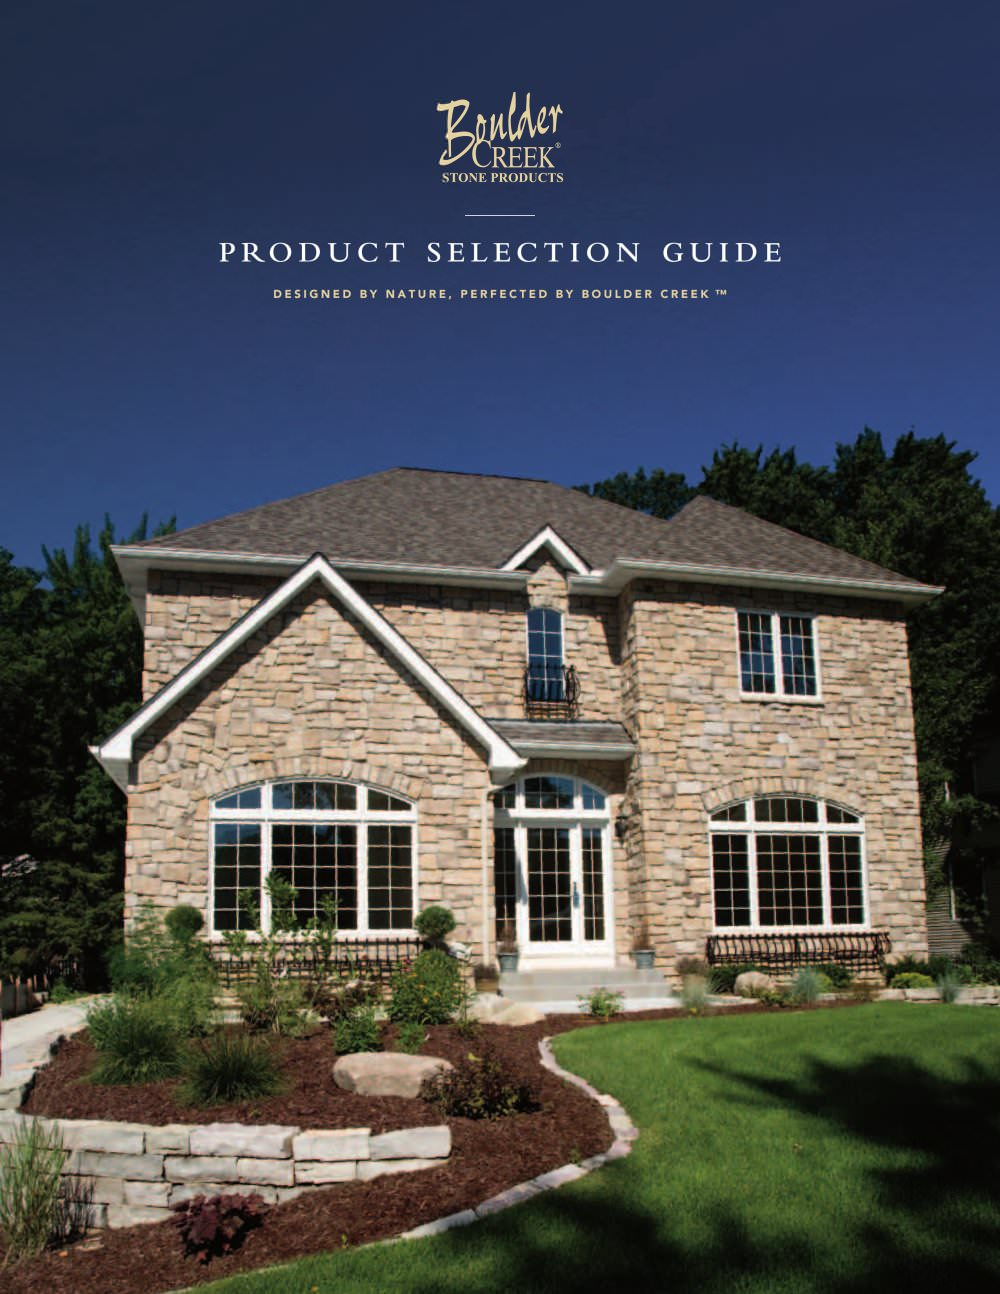 Cosmopolitan Product Selection Guide Pages Product Selection Guide Boulder Creek Stone Brick Pdf Boulder Creek Stone Products Minneapolis Mn Boulder Creek Stone Careers houzz 01 Boulder Creek Stone